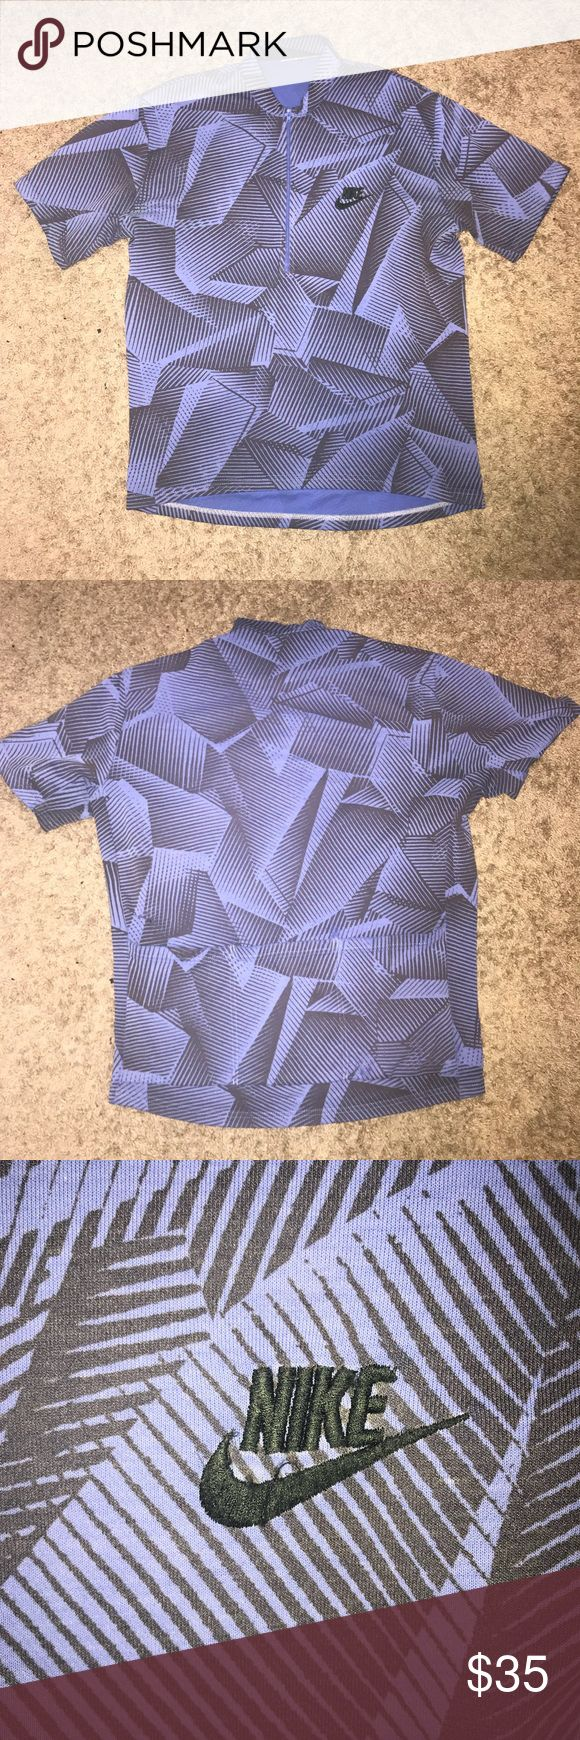 Vintage Nike Cycling Shirt Good condition has no tag, so possibly bootleg but still looks good and very comfortable Nike Shirts Tees - Short Sleeve